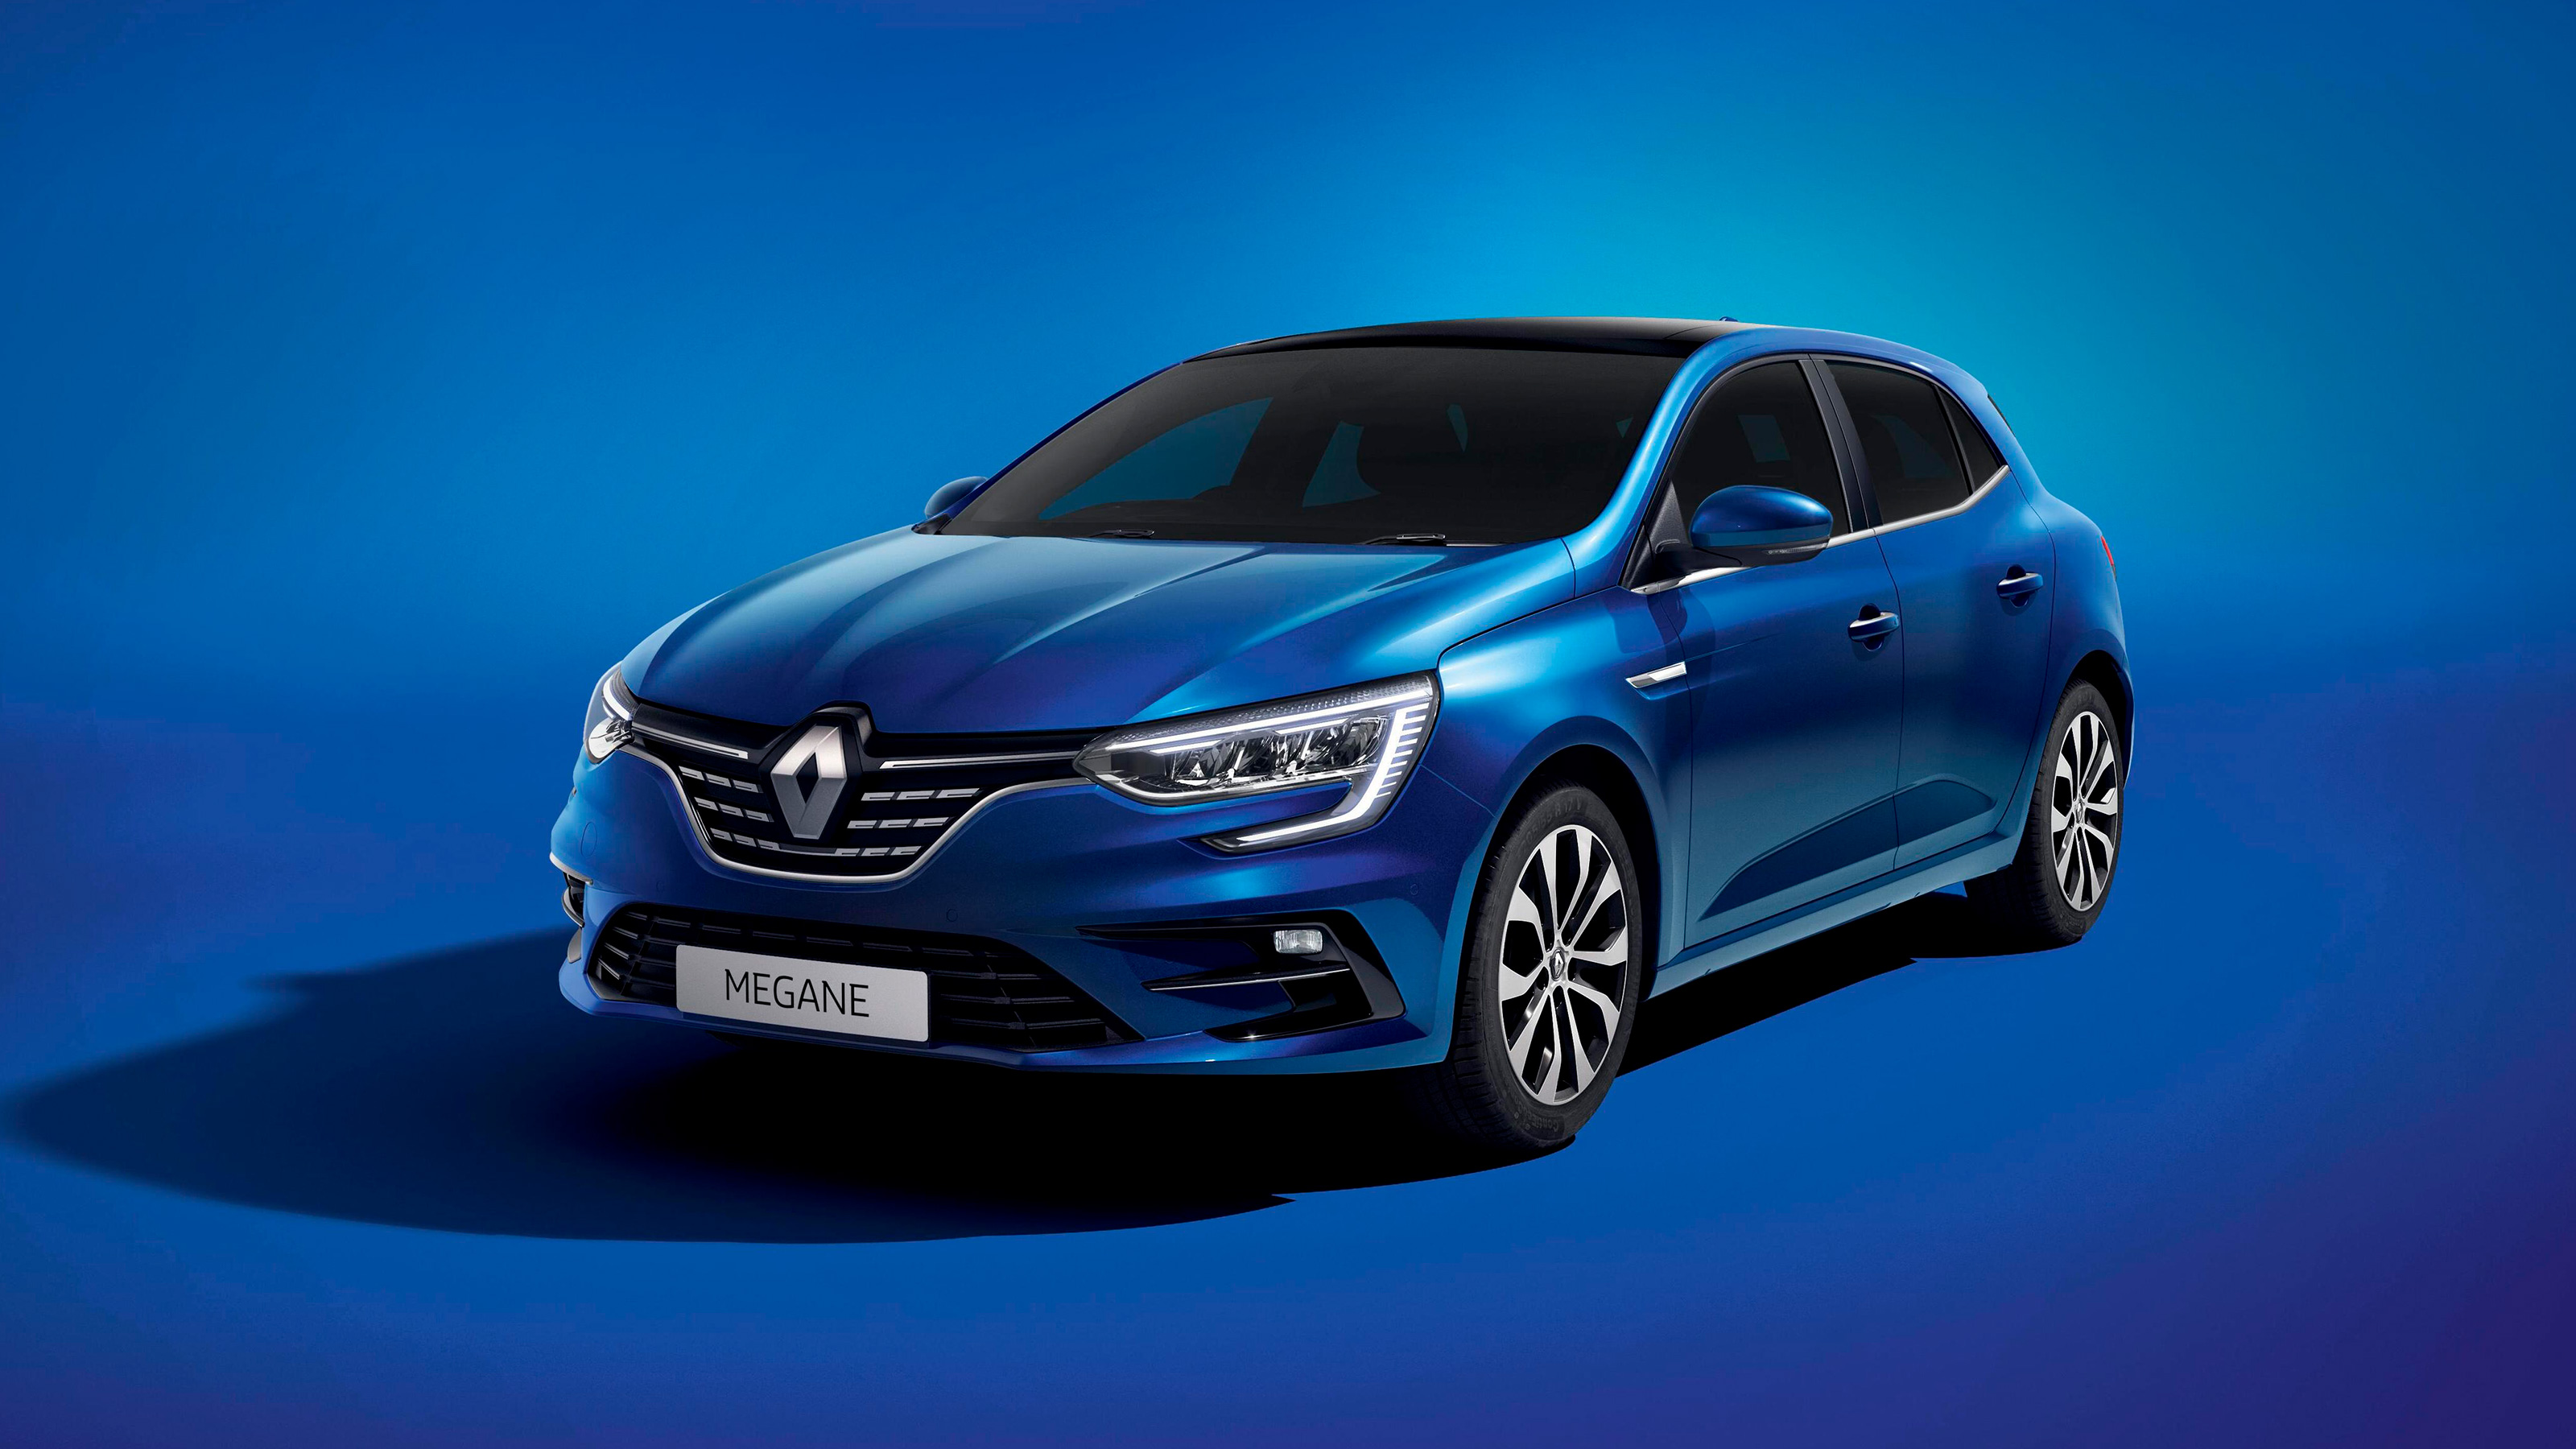 New 2020 Renault Megane Facelift Prices Confirmed Auto Express